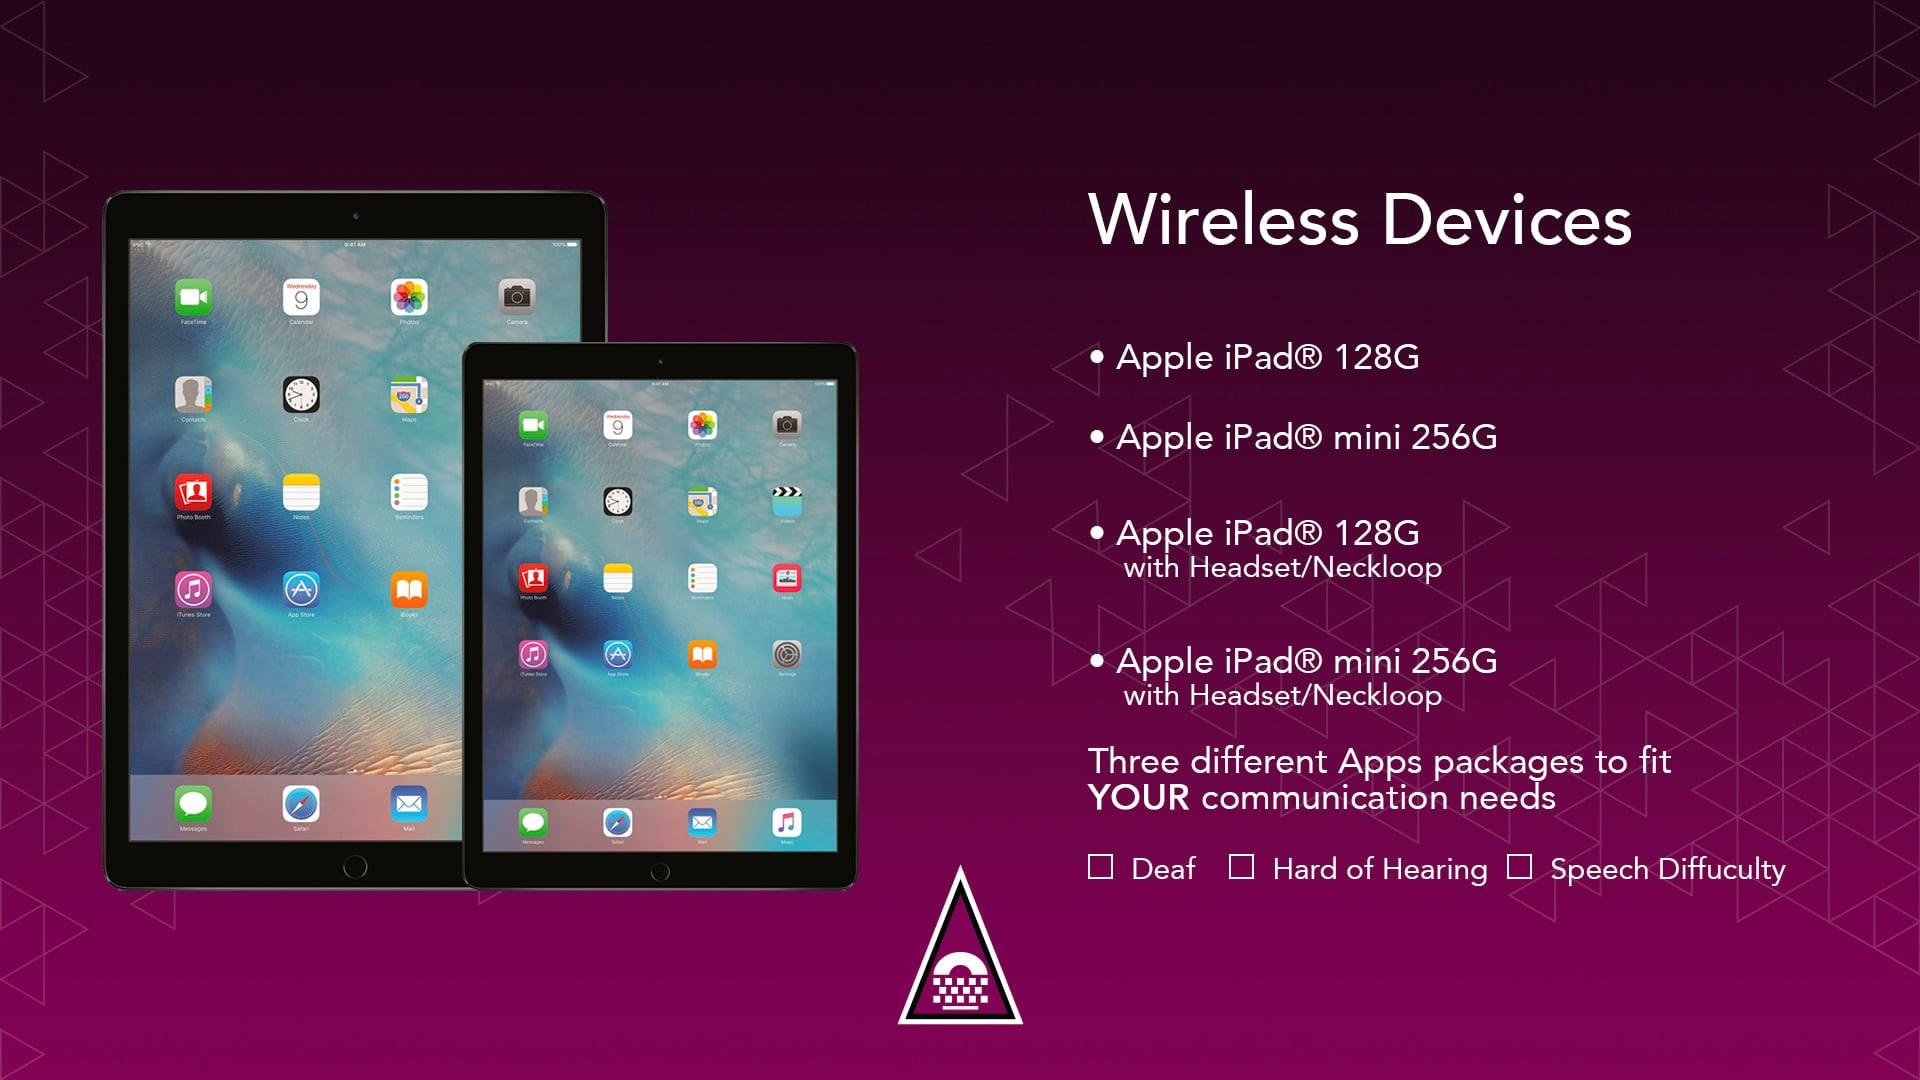 15 wireless devices